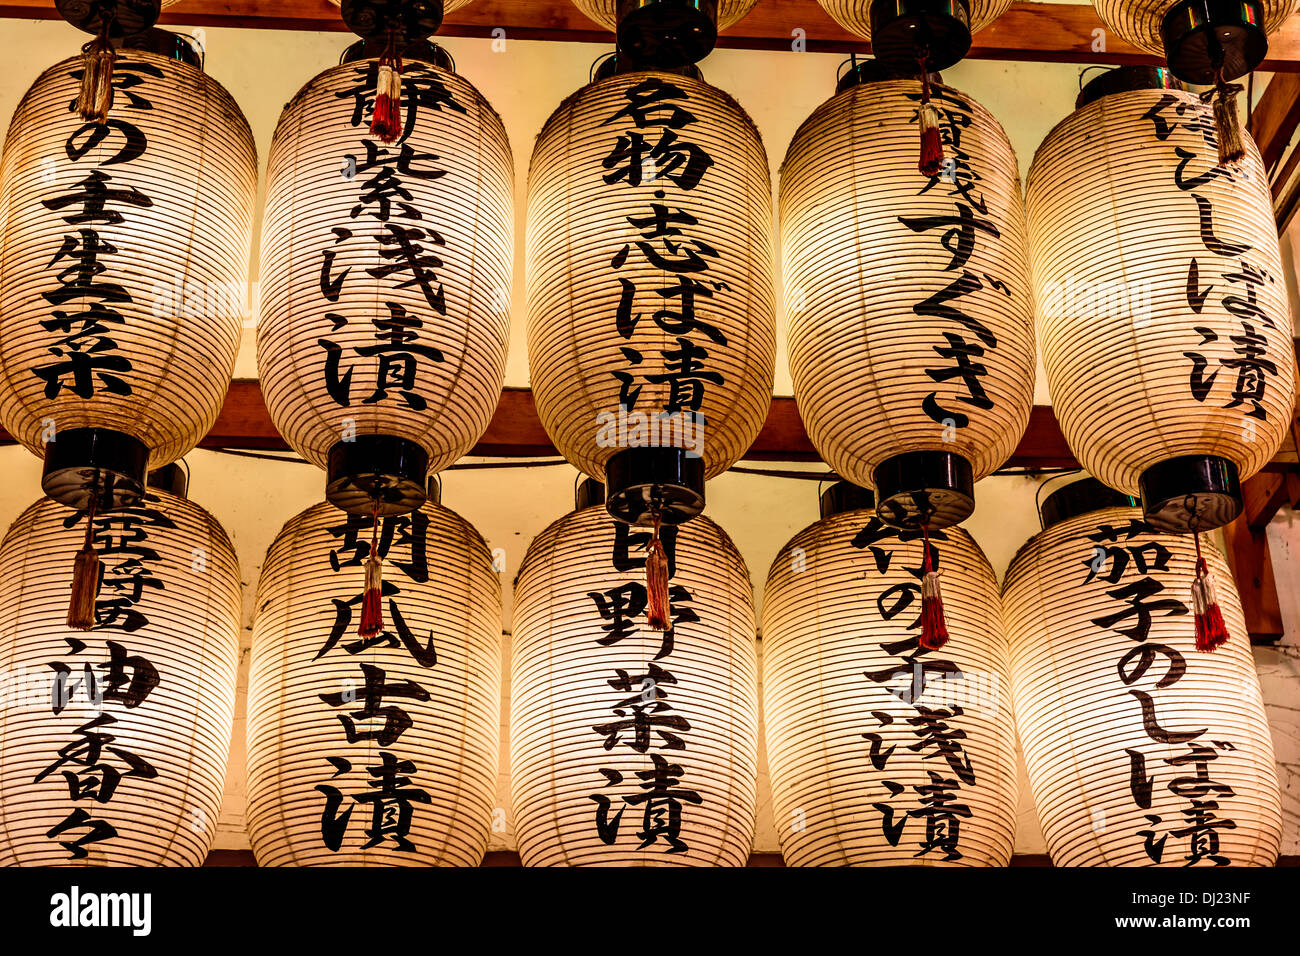 Paper lanterns from rice paper, Nishiki Market, Kyoto, Japan, Asia - Stock Image